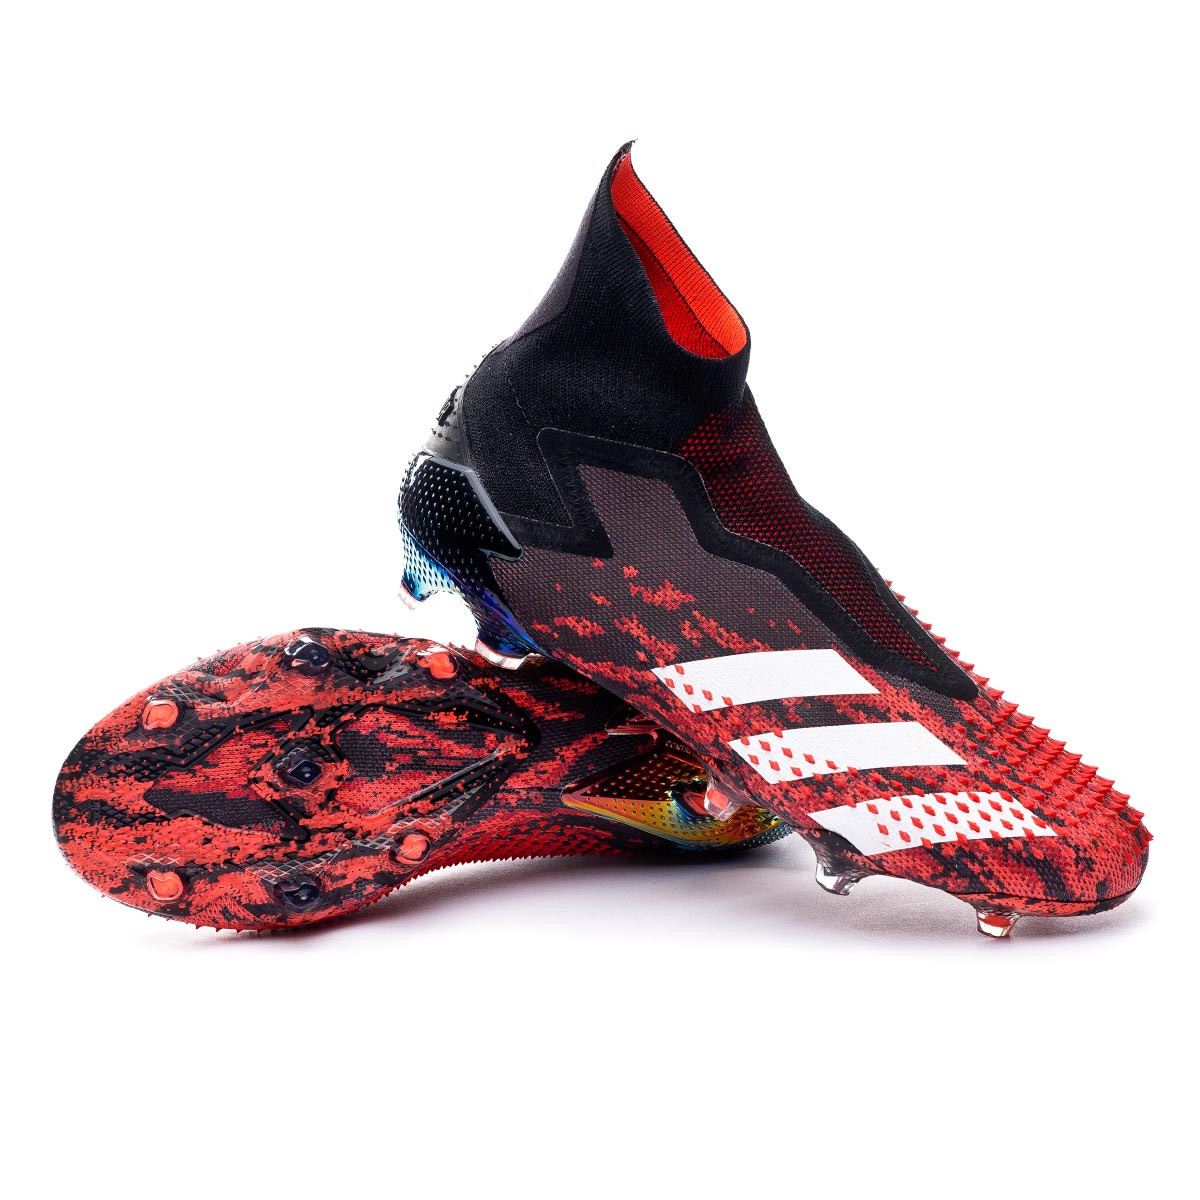 Football Boots adidas Predator 20+ FG Core black-White-Active red ...